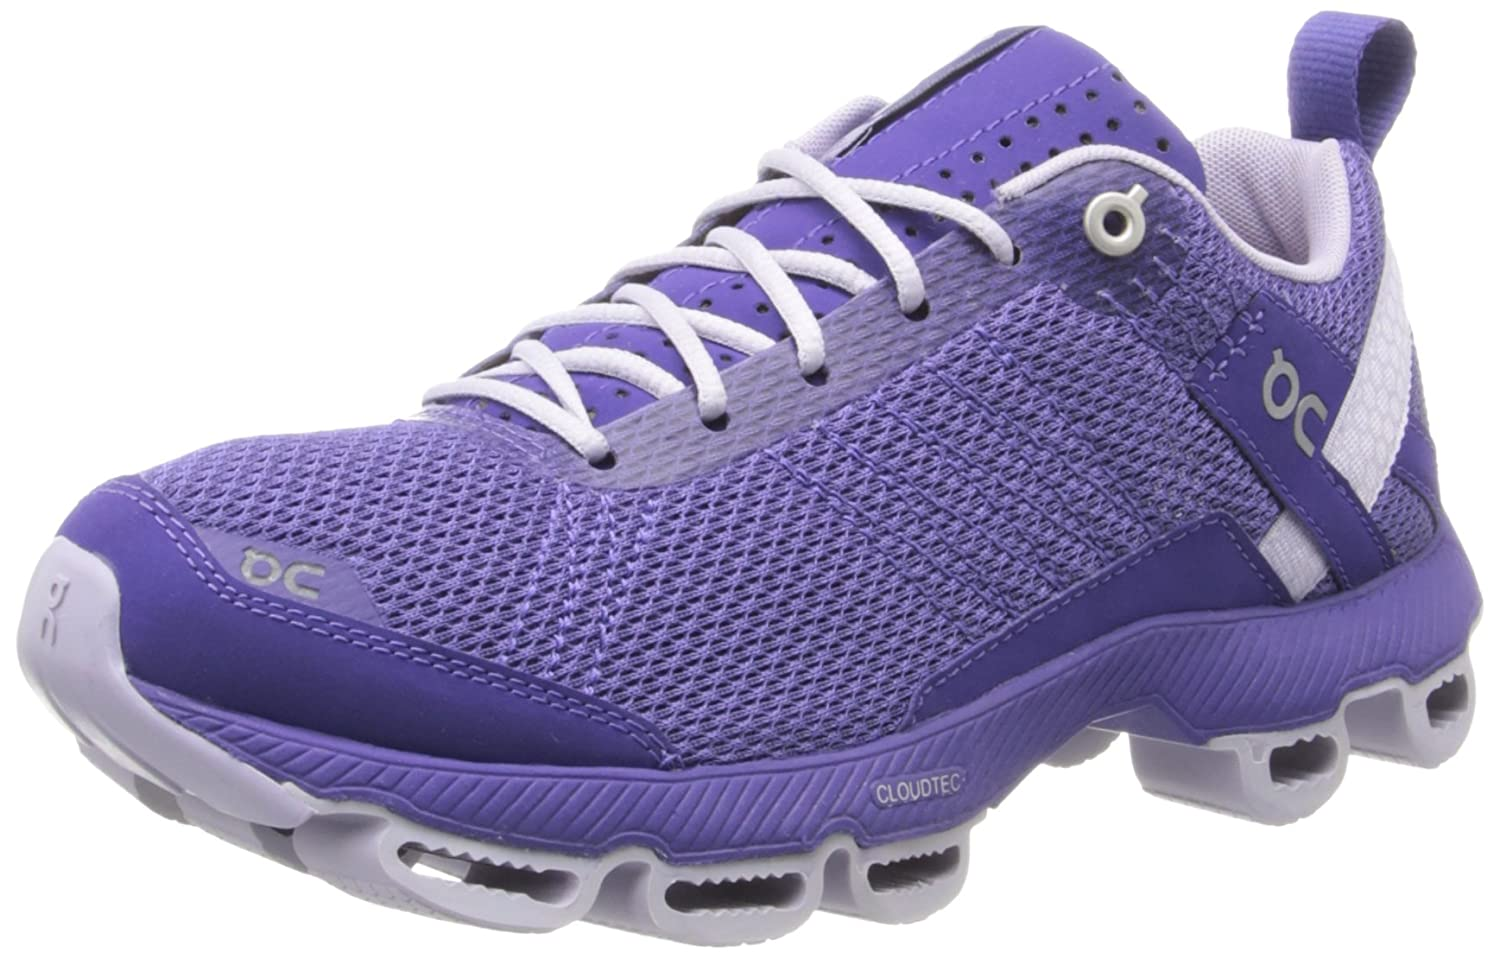 ON Women's Cloudsurfer Sneaker B00GS4MN20 6 B(M) US|Dawn/Lavender